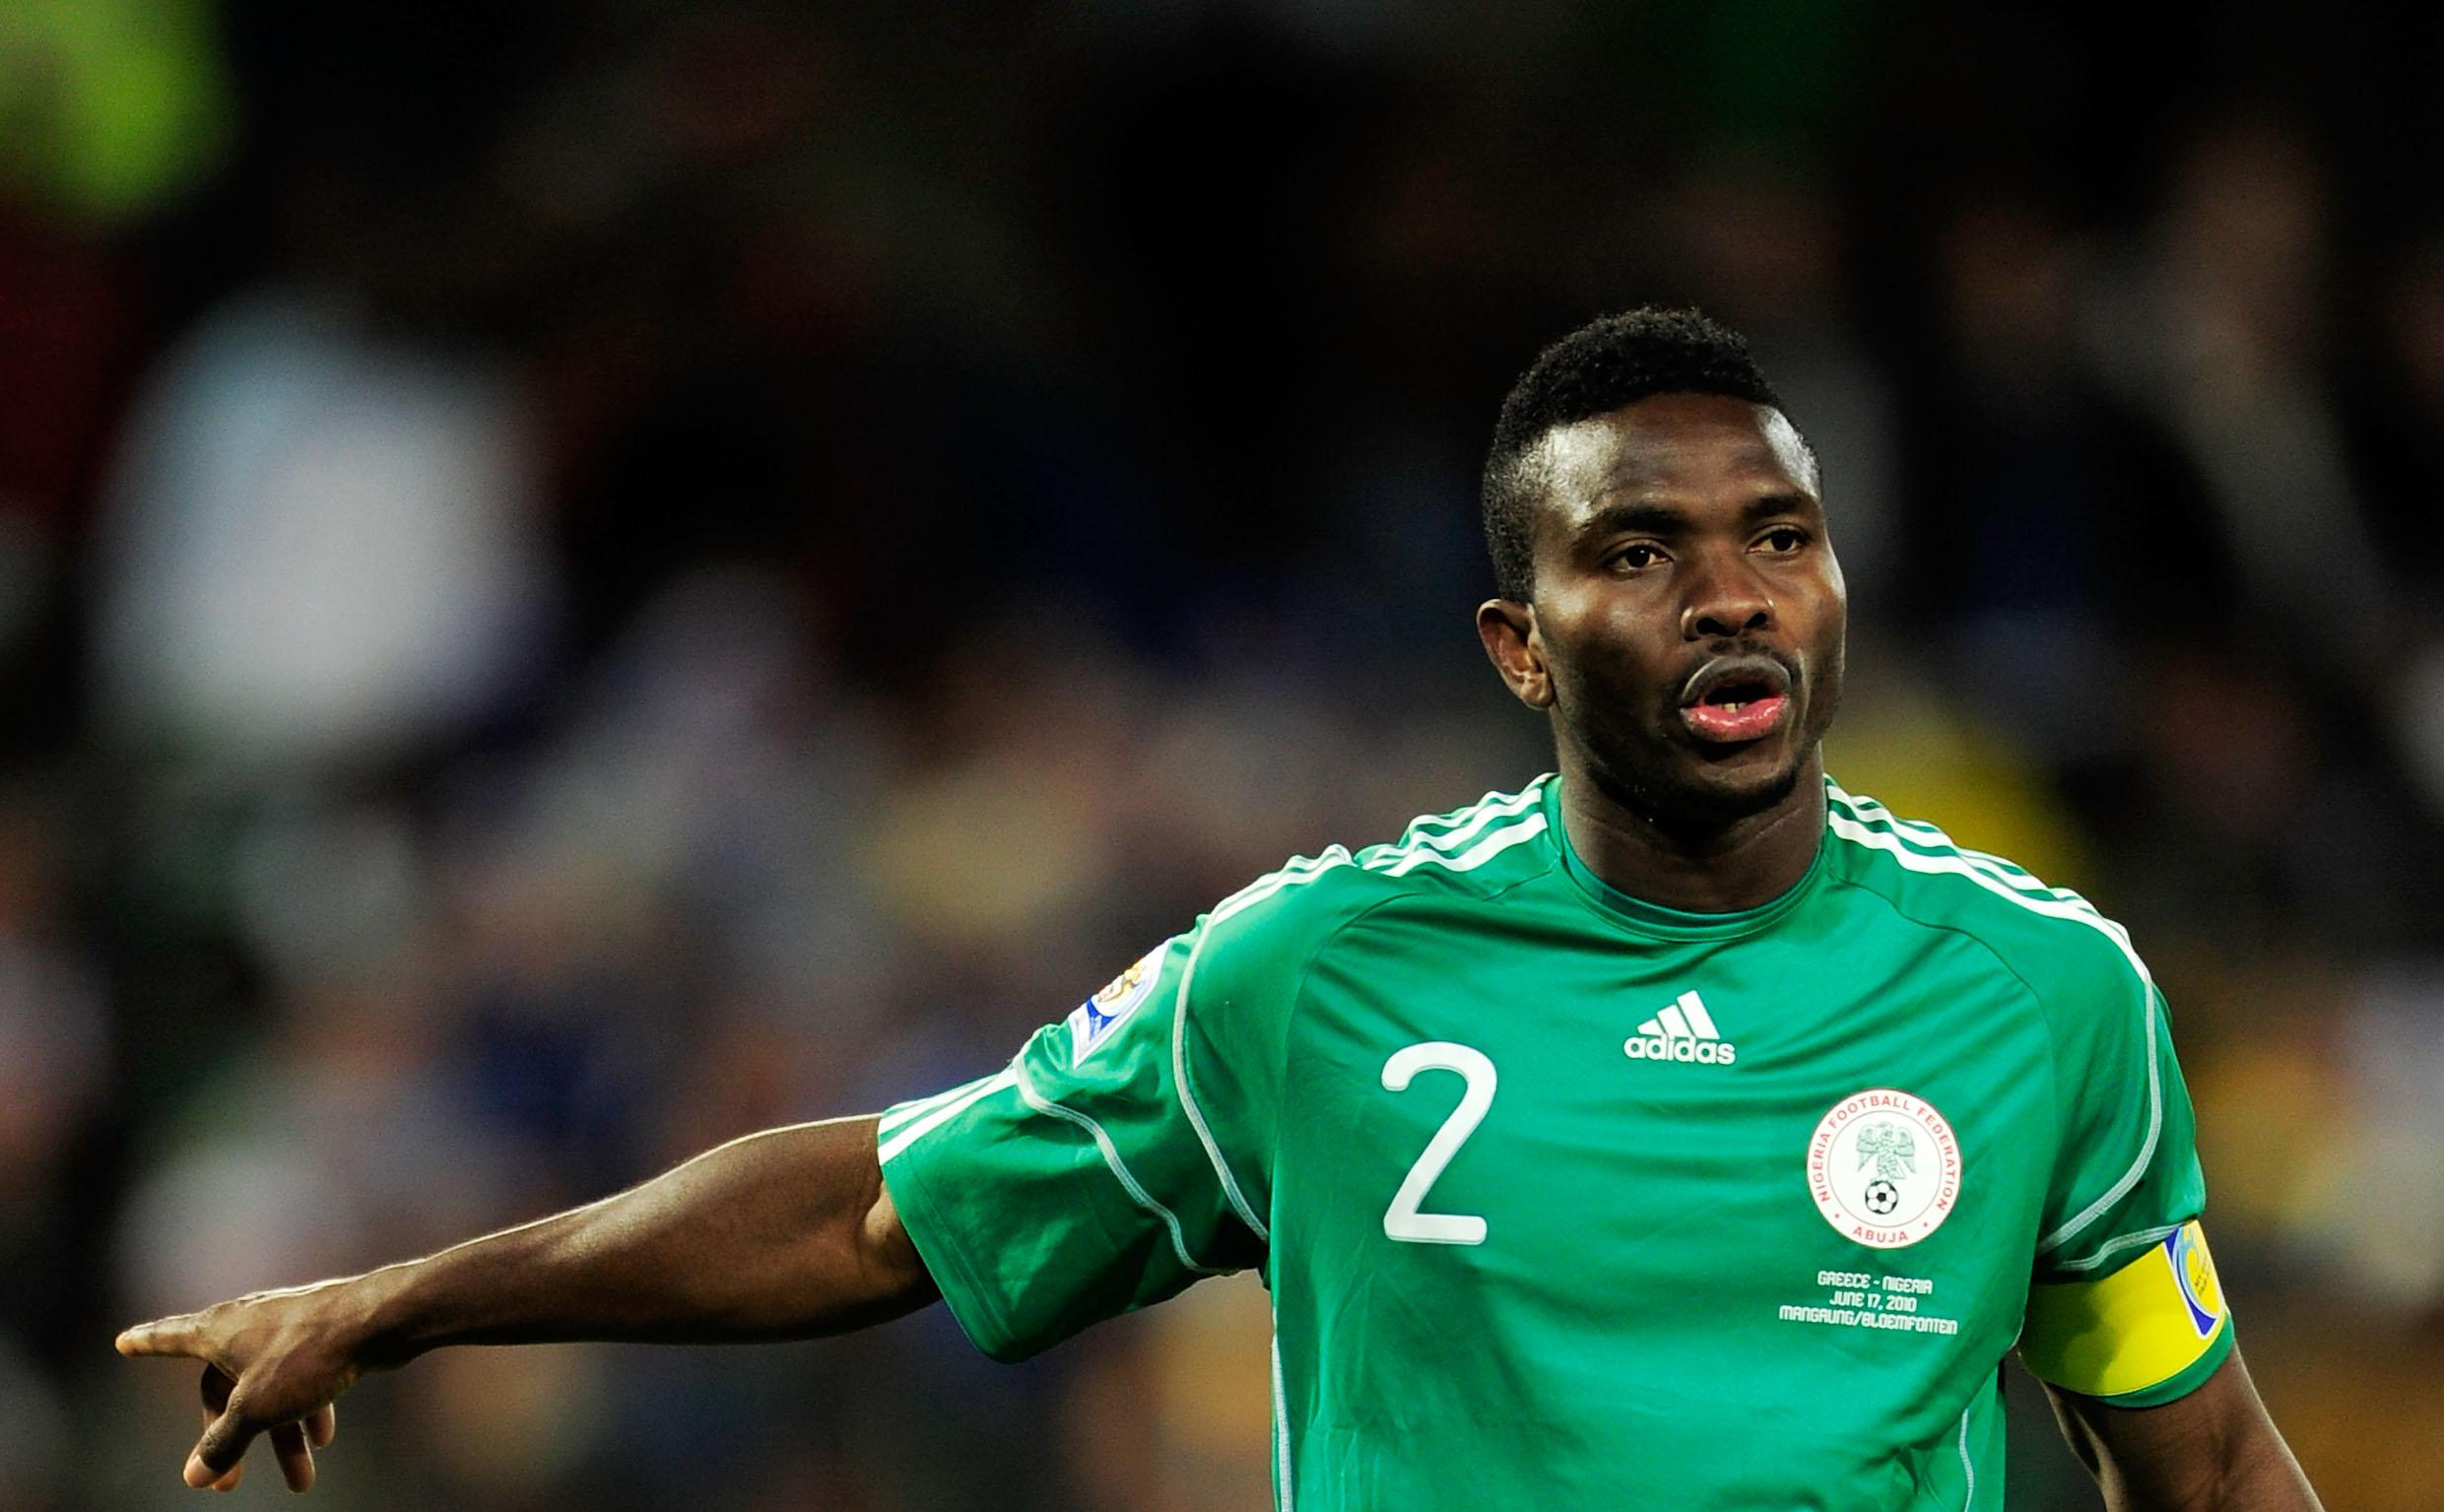 ONE AFRICA! Ex-Captains Okocha, Yobo condemn Xenophobic attacks on Nigerians in SA